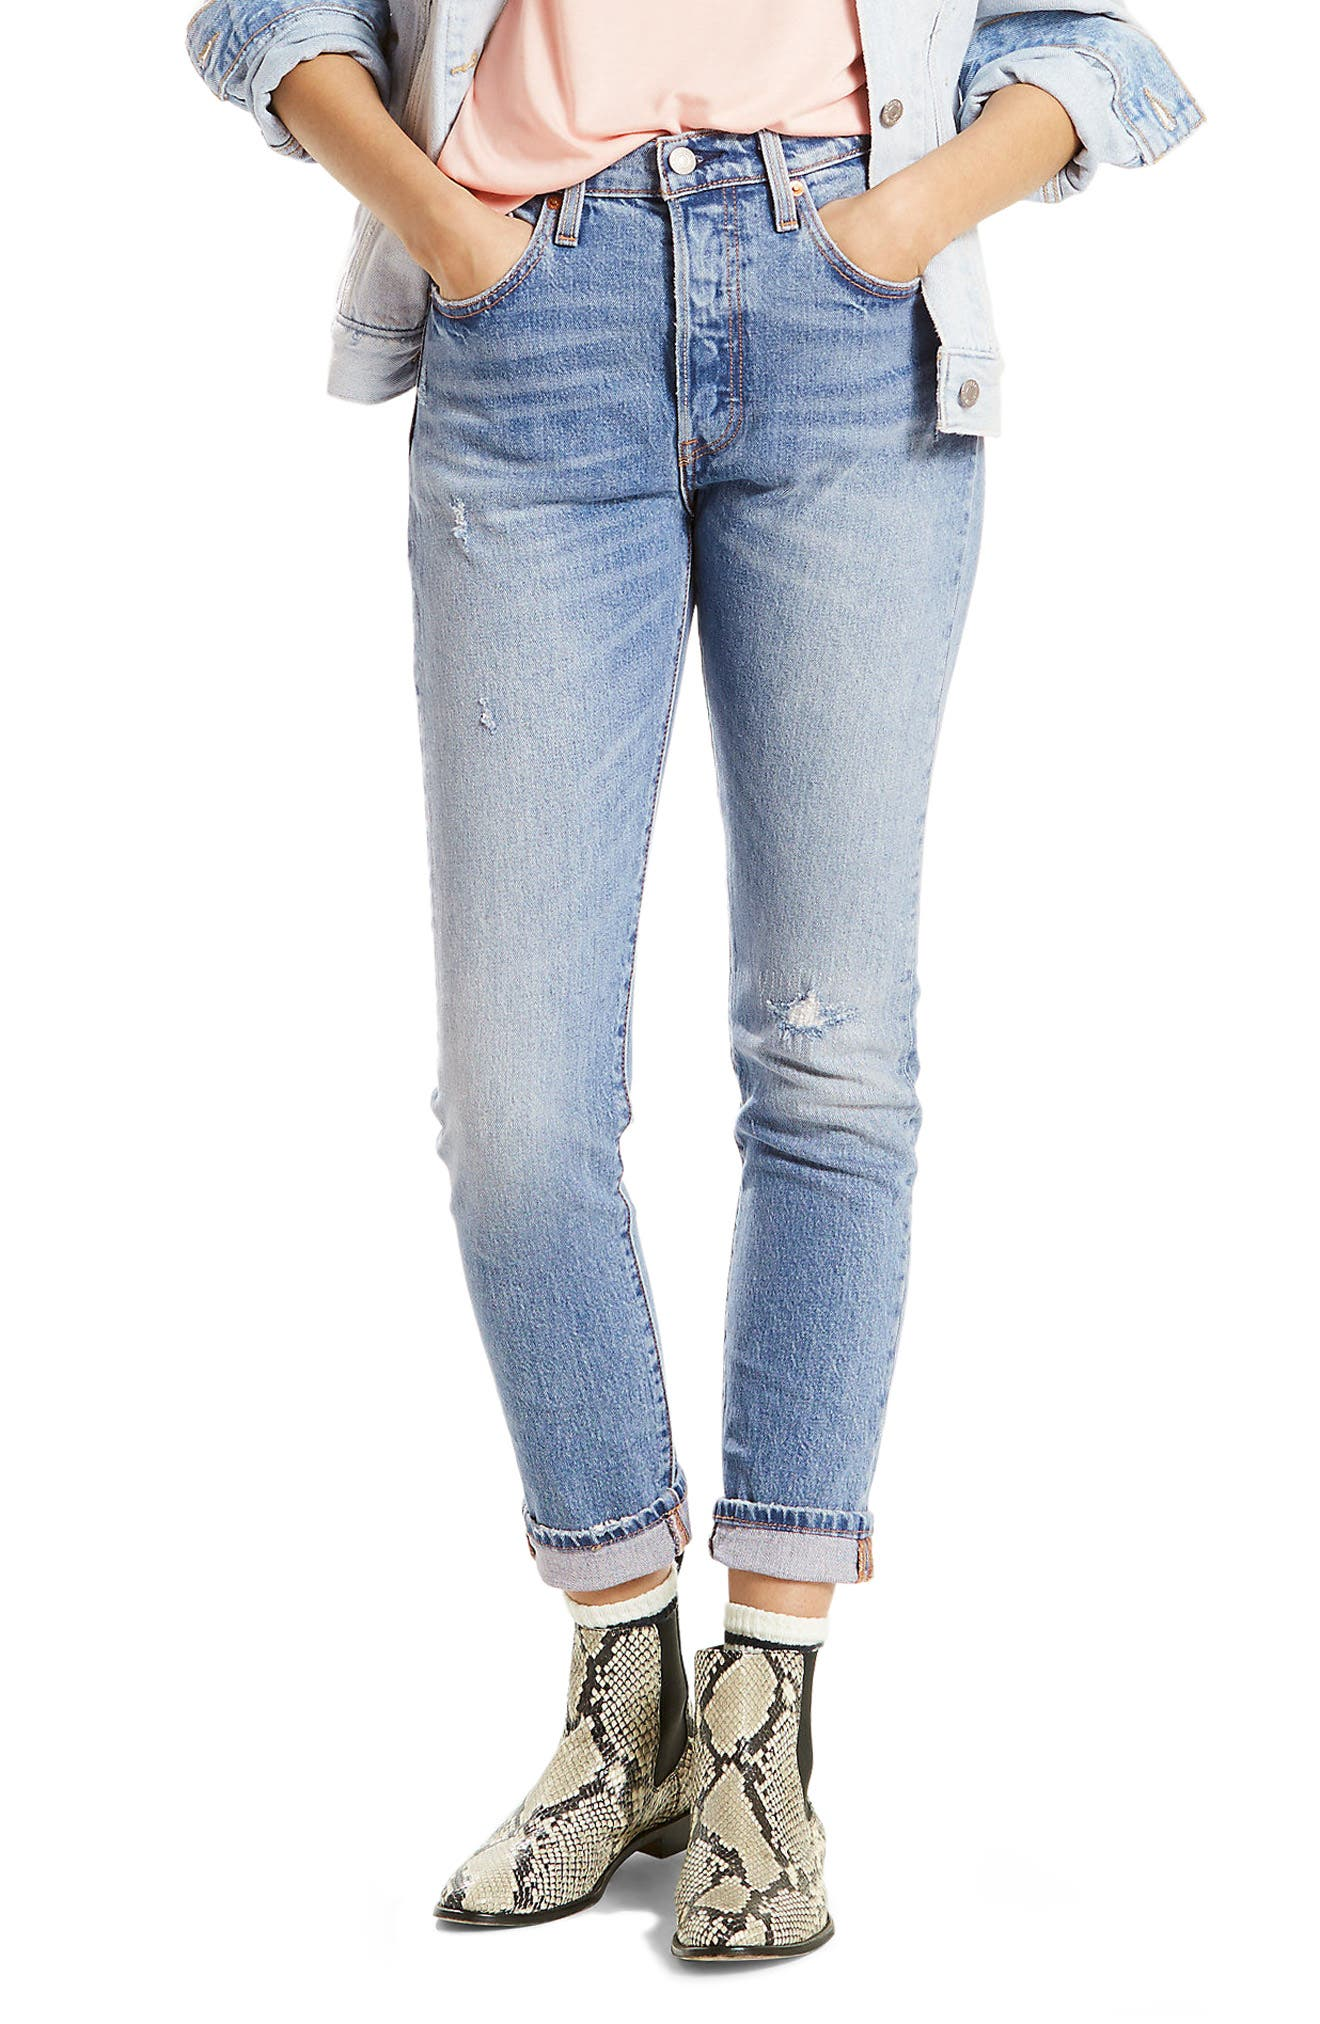 501 High Waist Skinny Jeans,                             Main thumbnail 1, color,                             Post Modern Blues